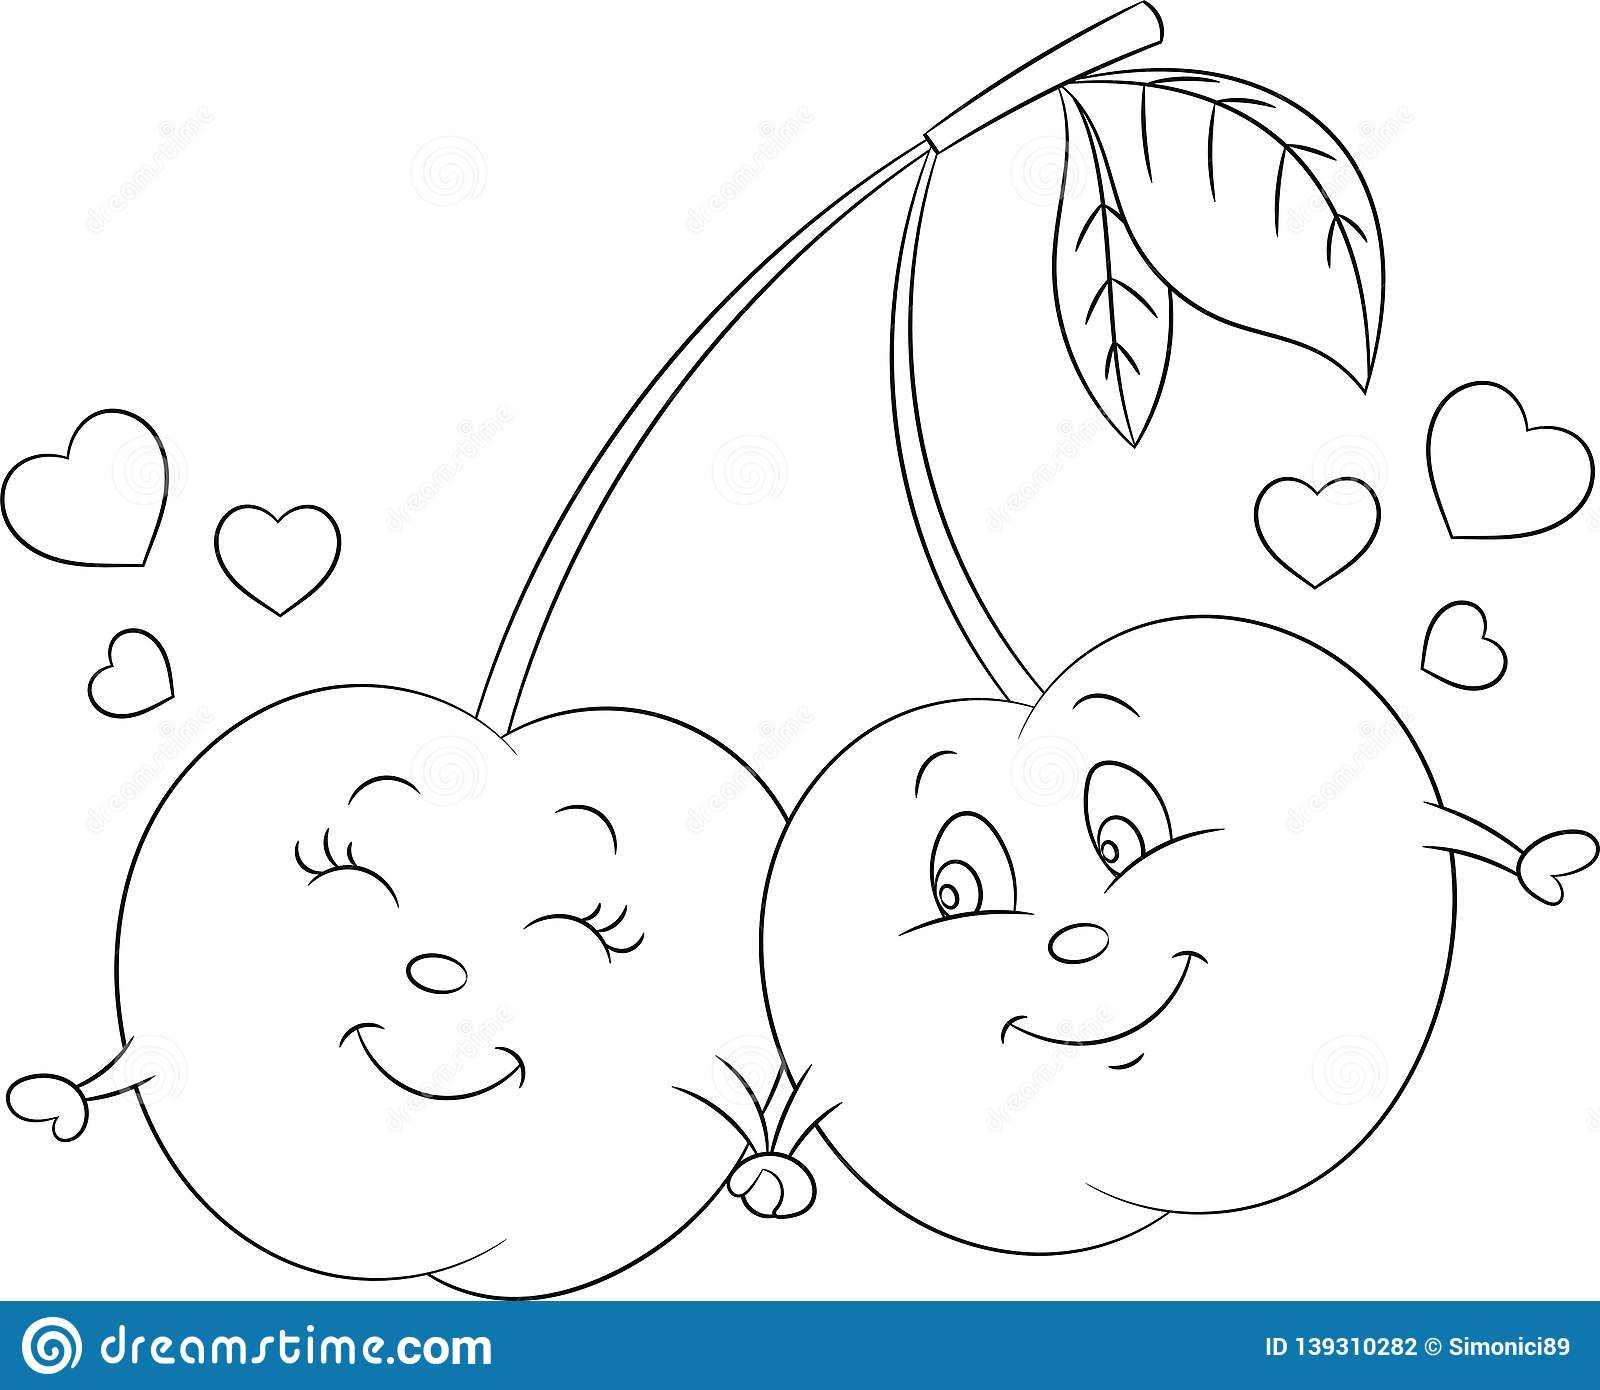 Adorable contour kawaii drawing of a cherry couple in love